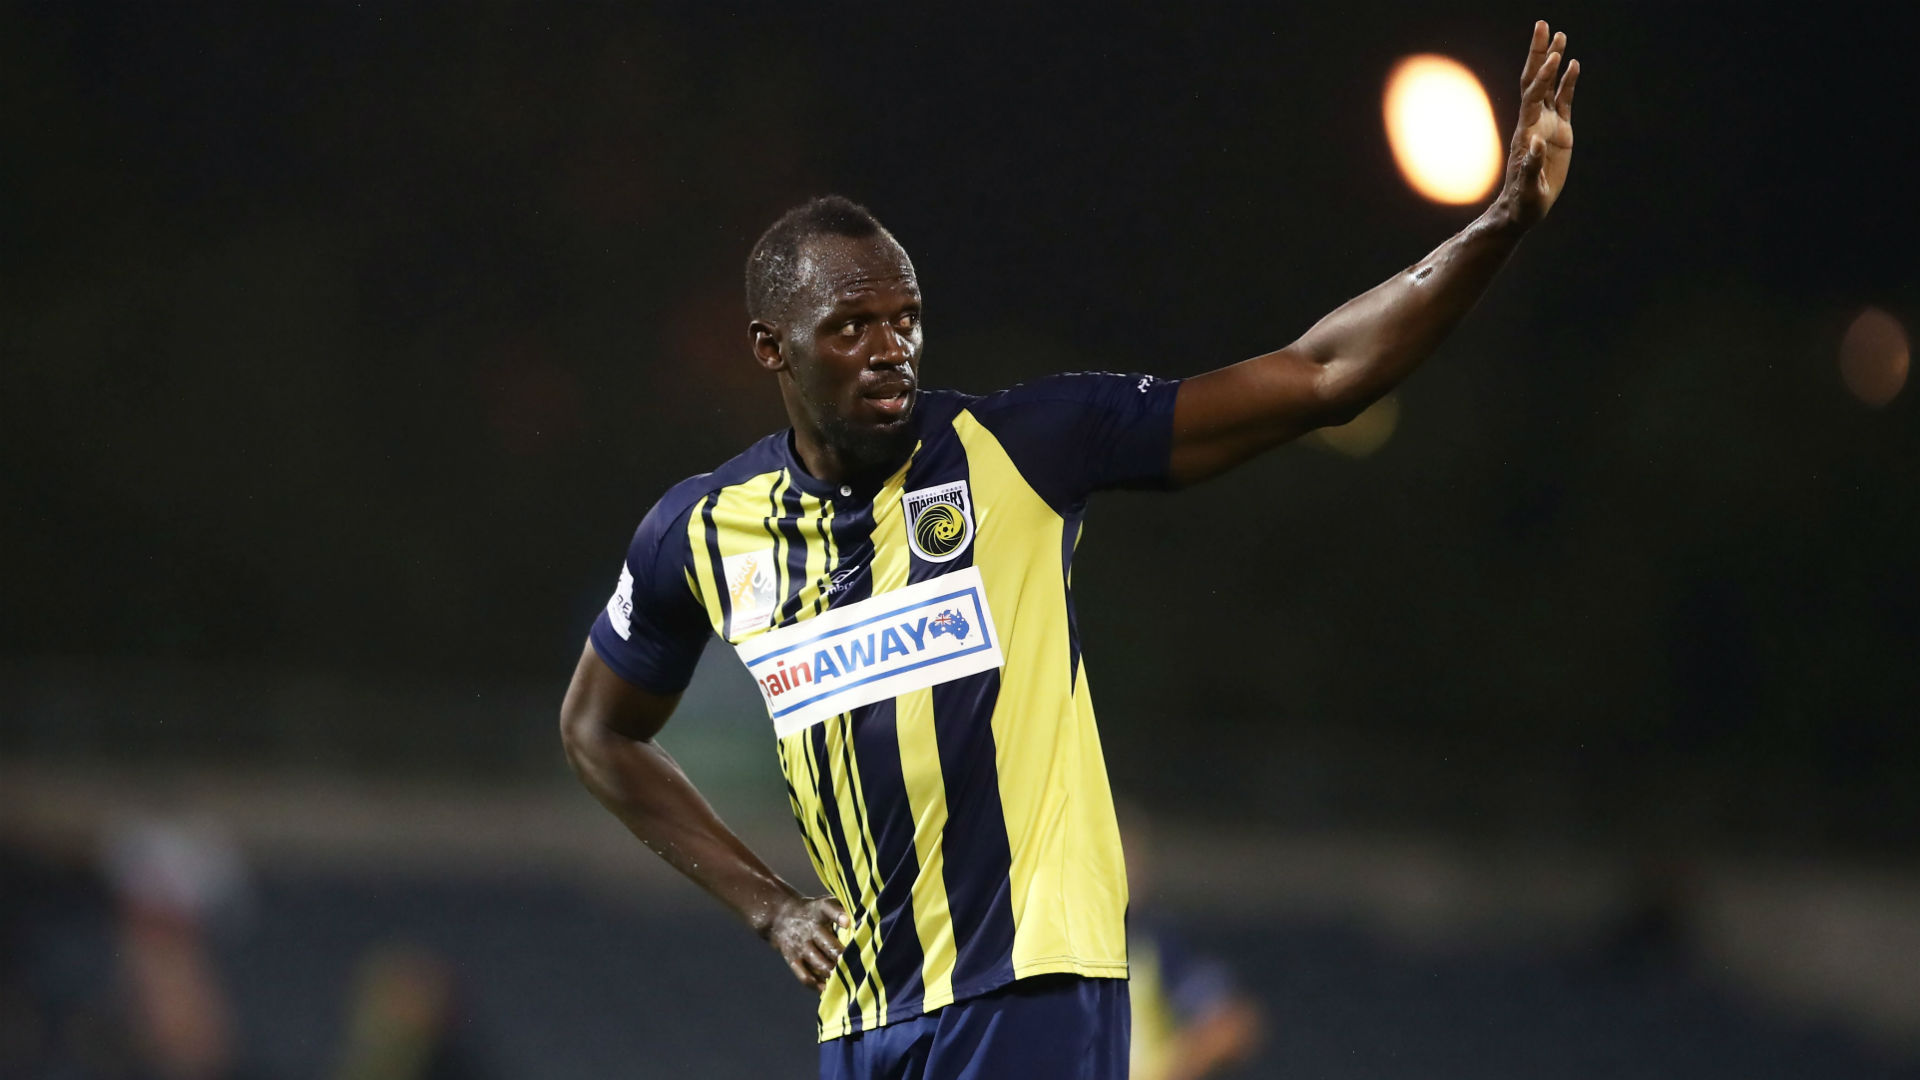 Footballer Bolt surprised by demand for drugs test